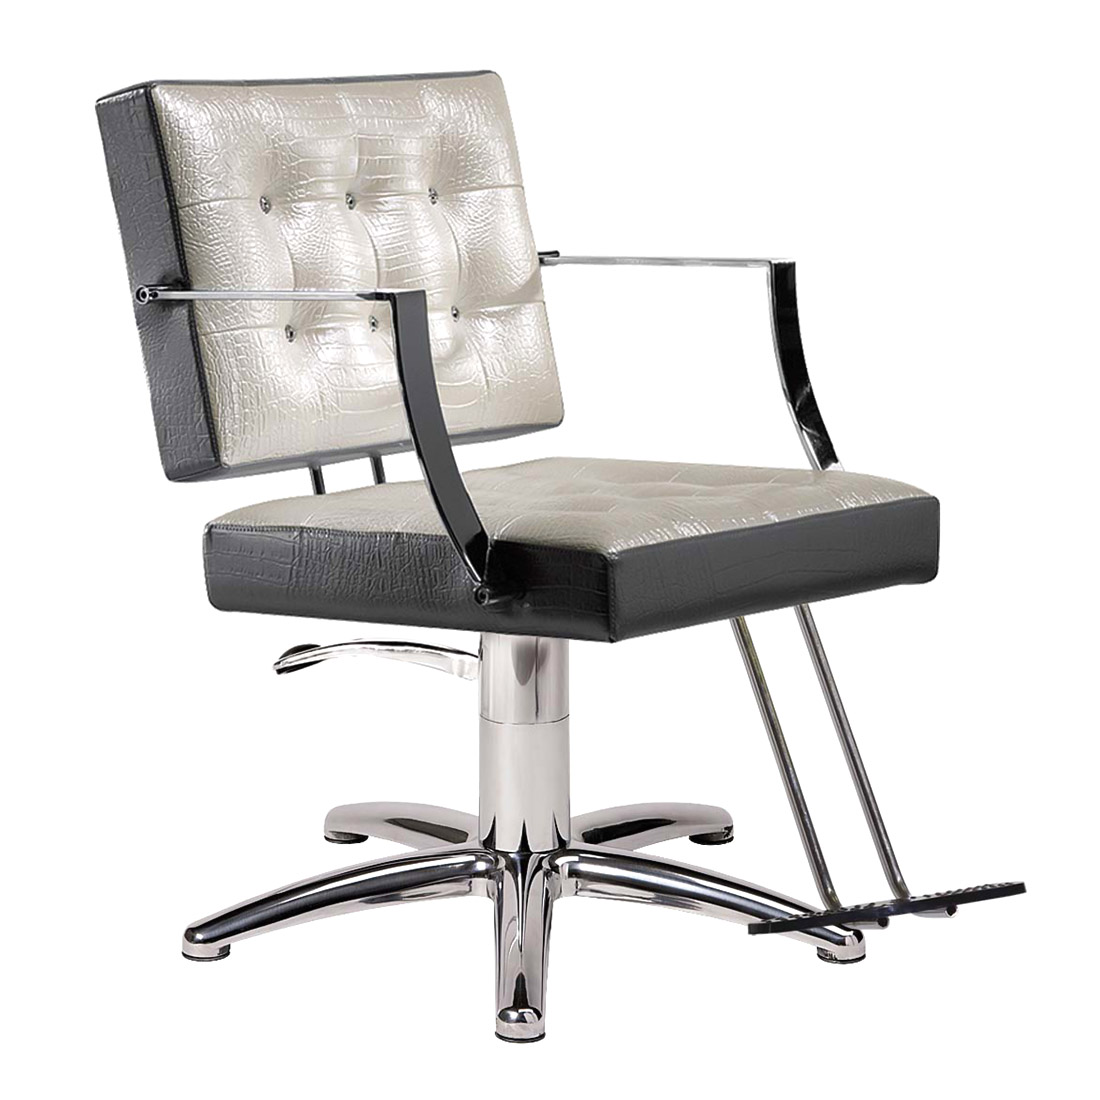 Grace Beauty Salon Chair by Salon Ambience alternative product image 2